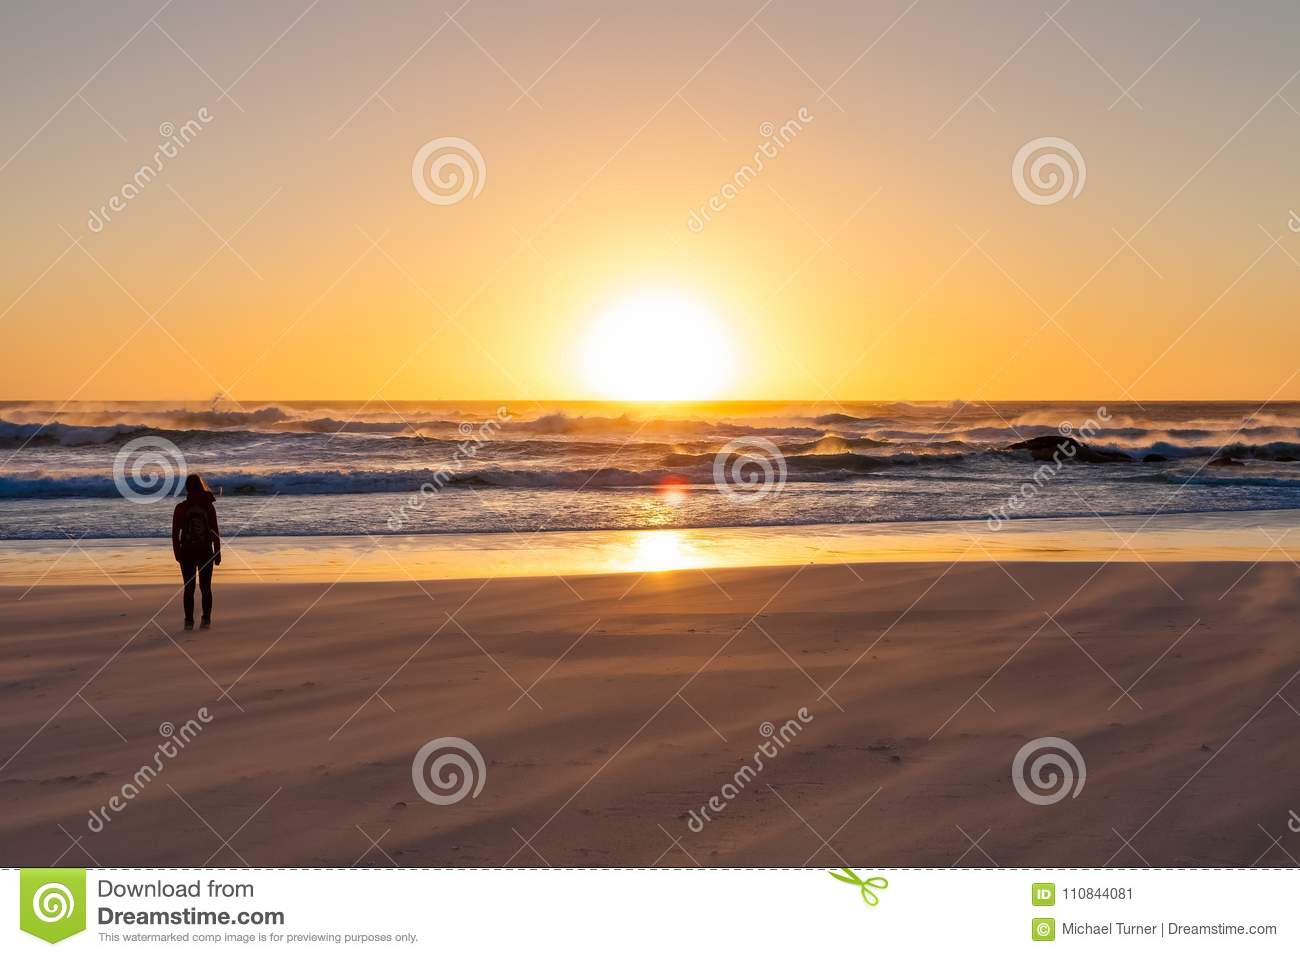 Silhouette girl watching a sunset on a sandy beach with rough ocean wind.